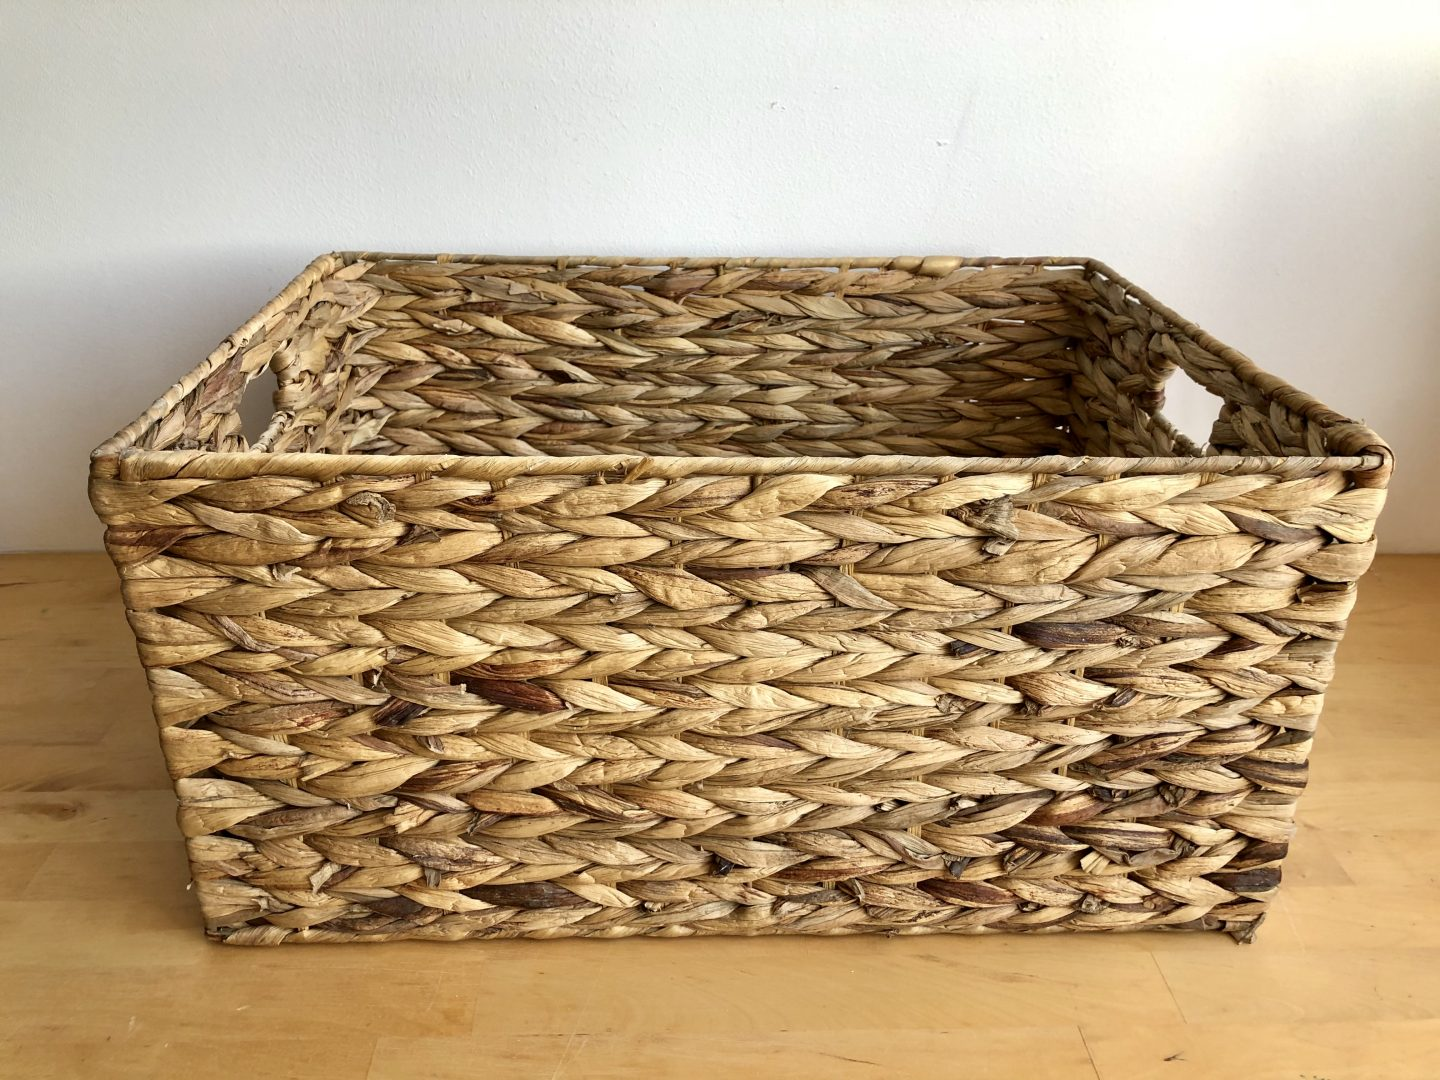 How to line a basket with handles